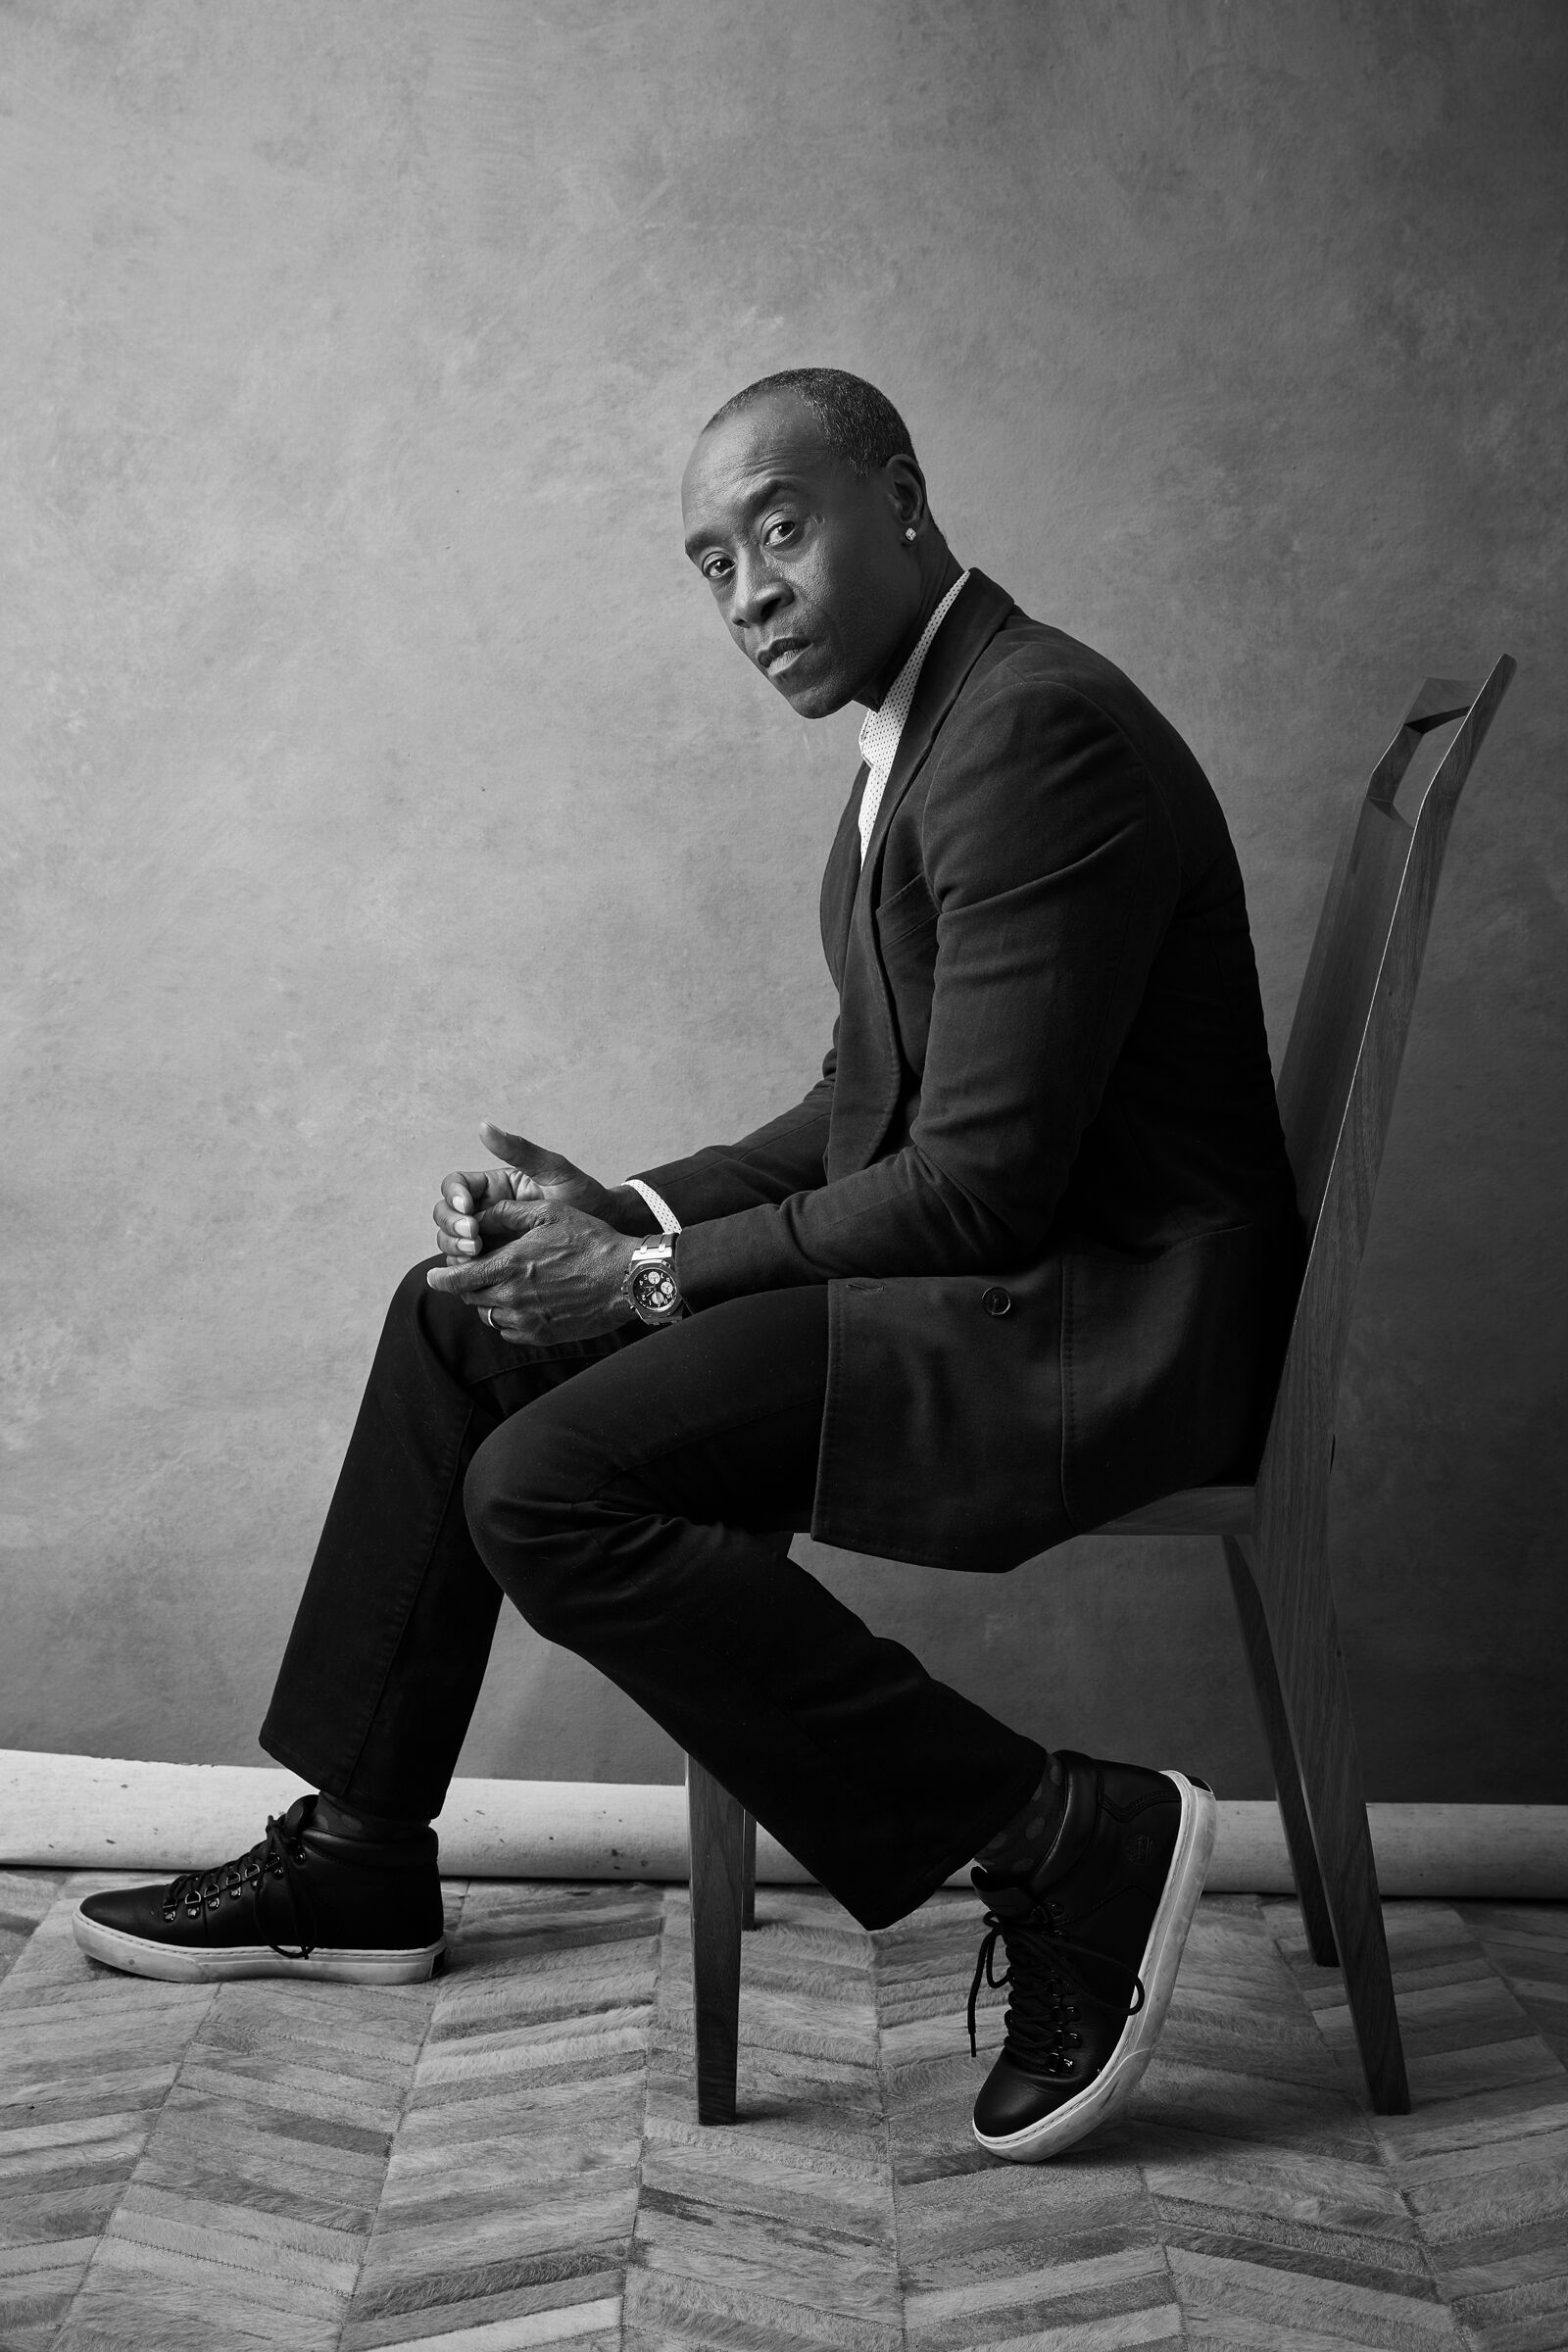 Justin Bettman photographed Don Cheadle for Esquire